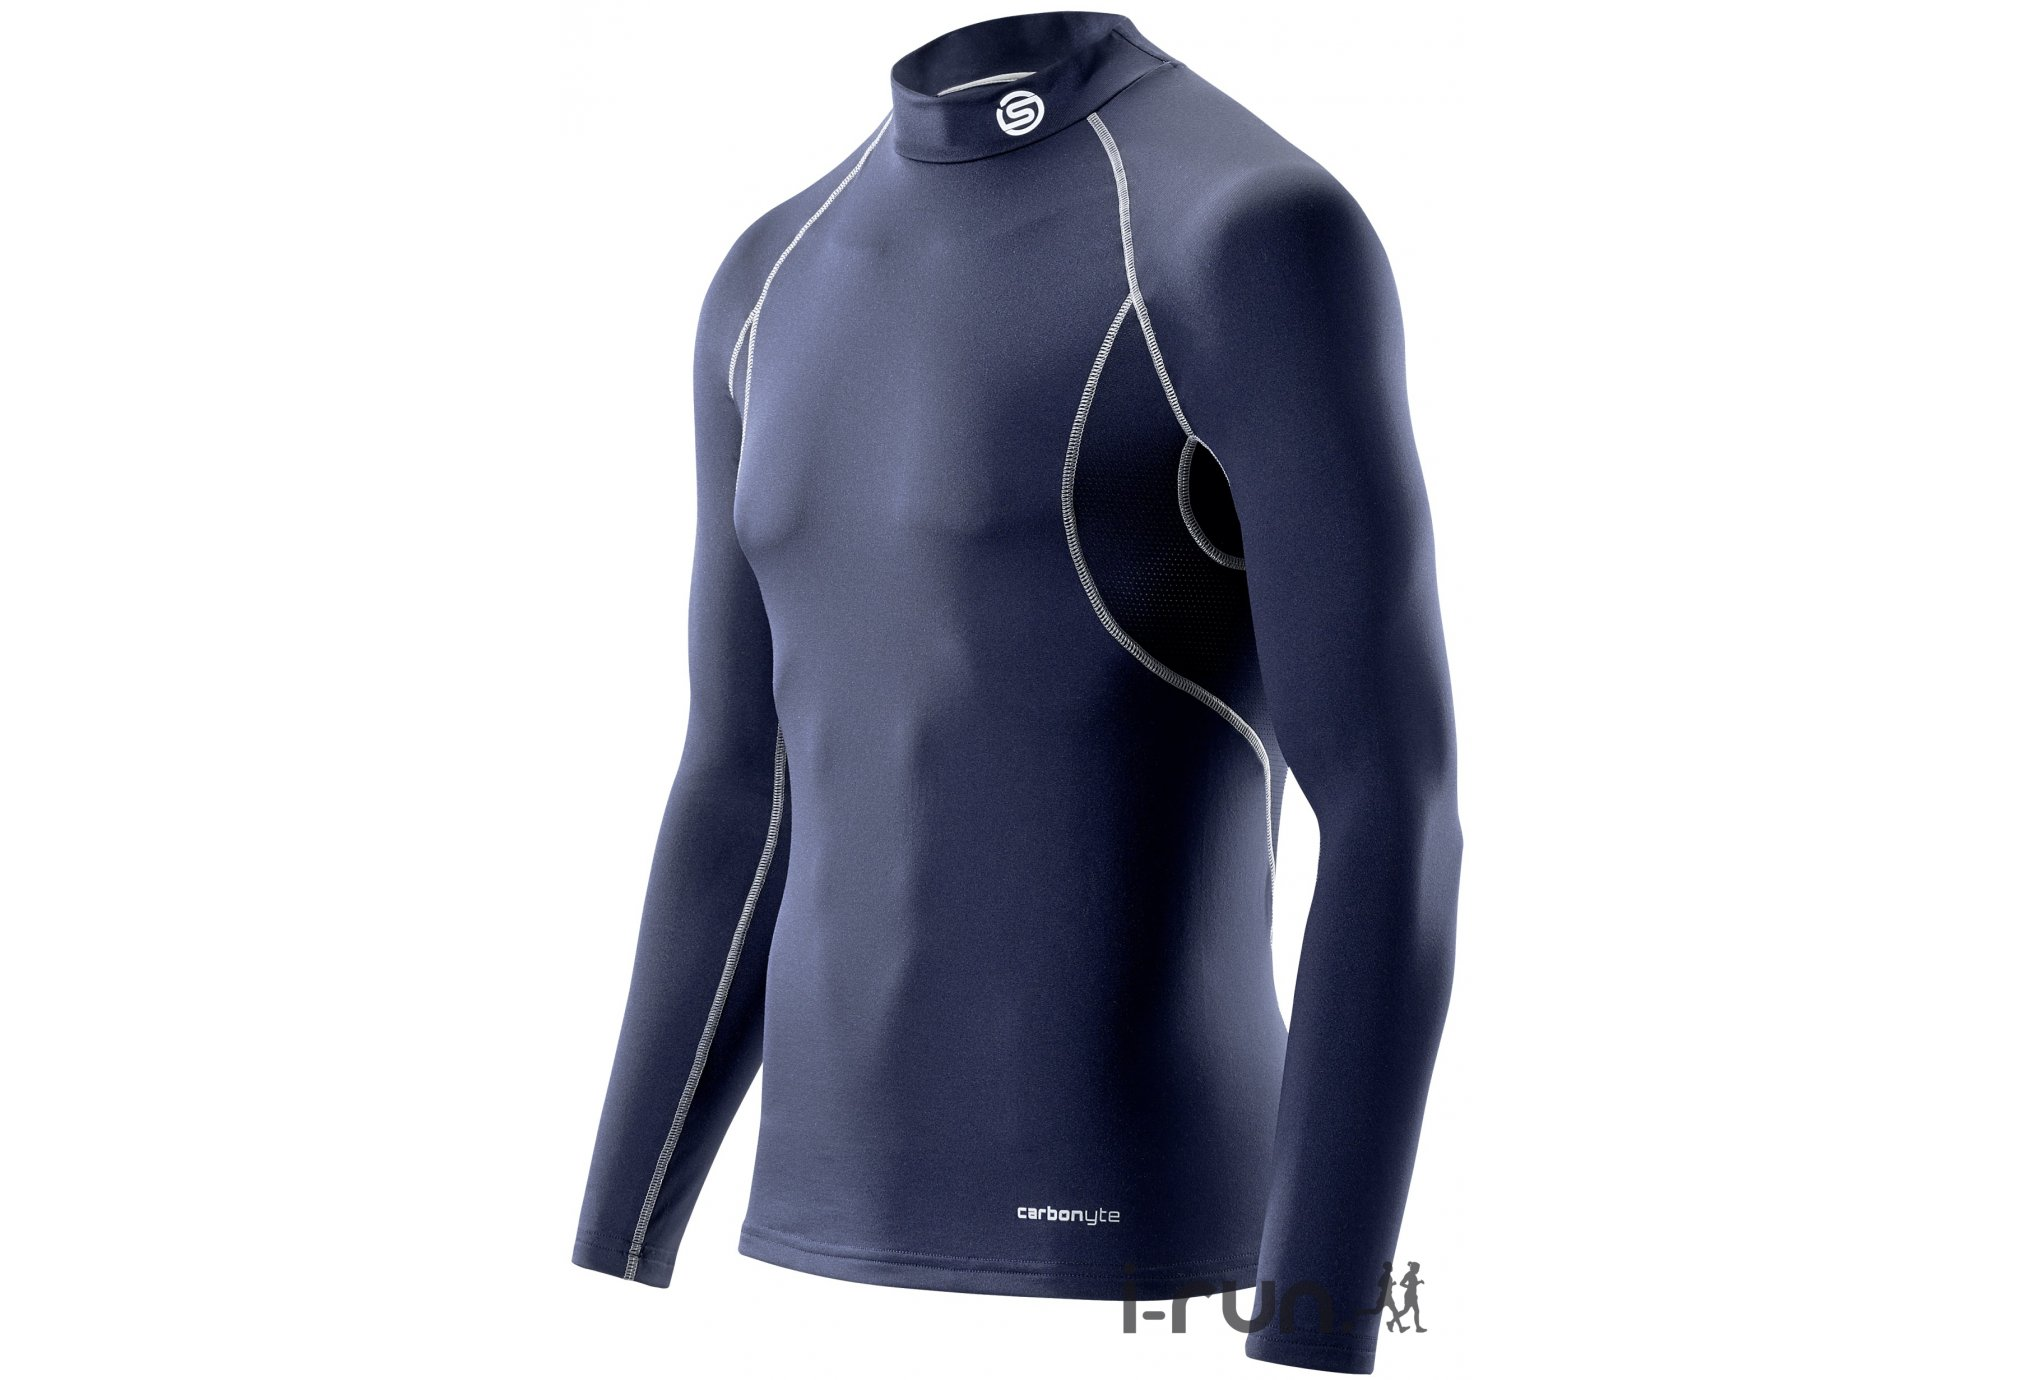 Skins Tee-shirt Carbonyte Thermal Baselayer M vêtement running homme